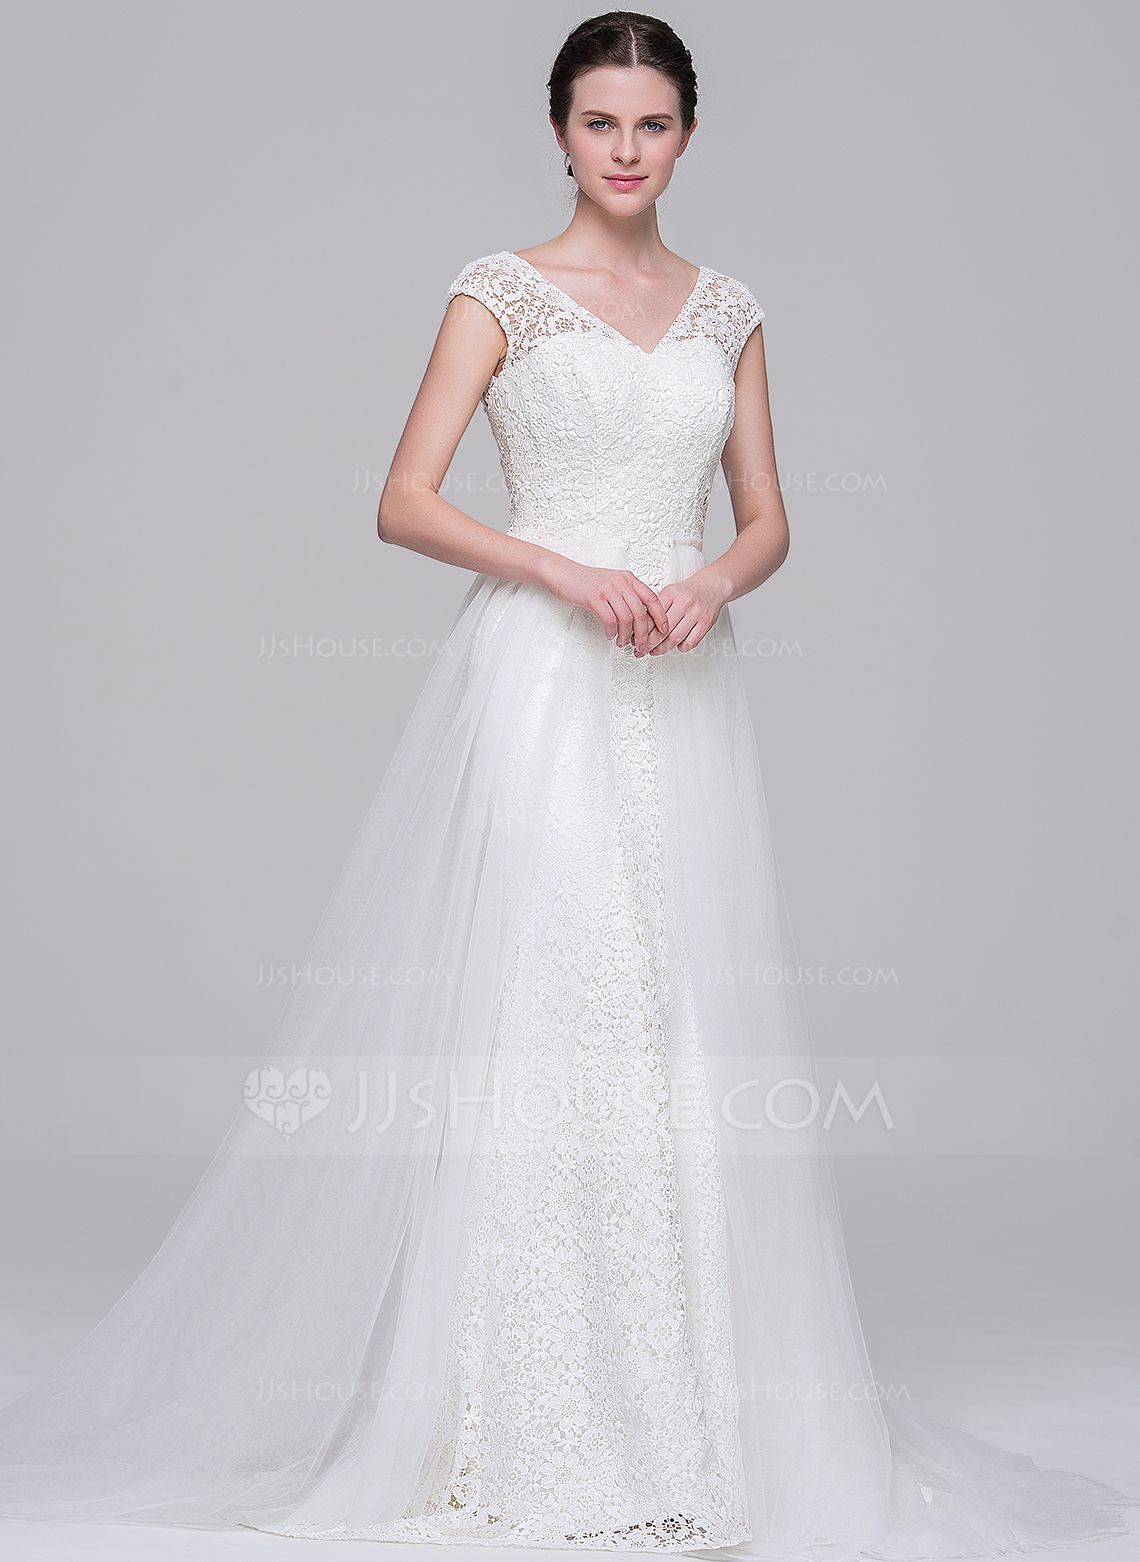 Lace wedding dress with train  ALinePrincess Vneck Court Train Detachable Tulle Lace Wedding